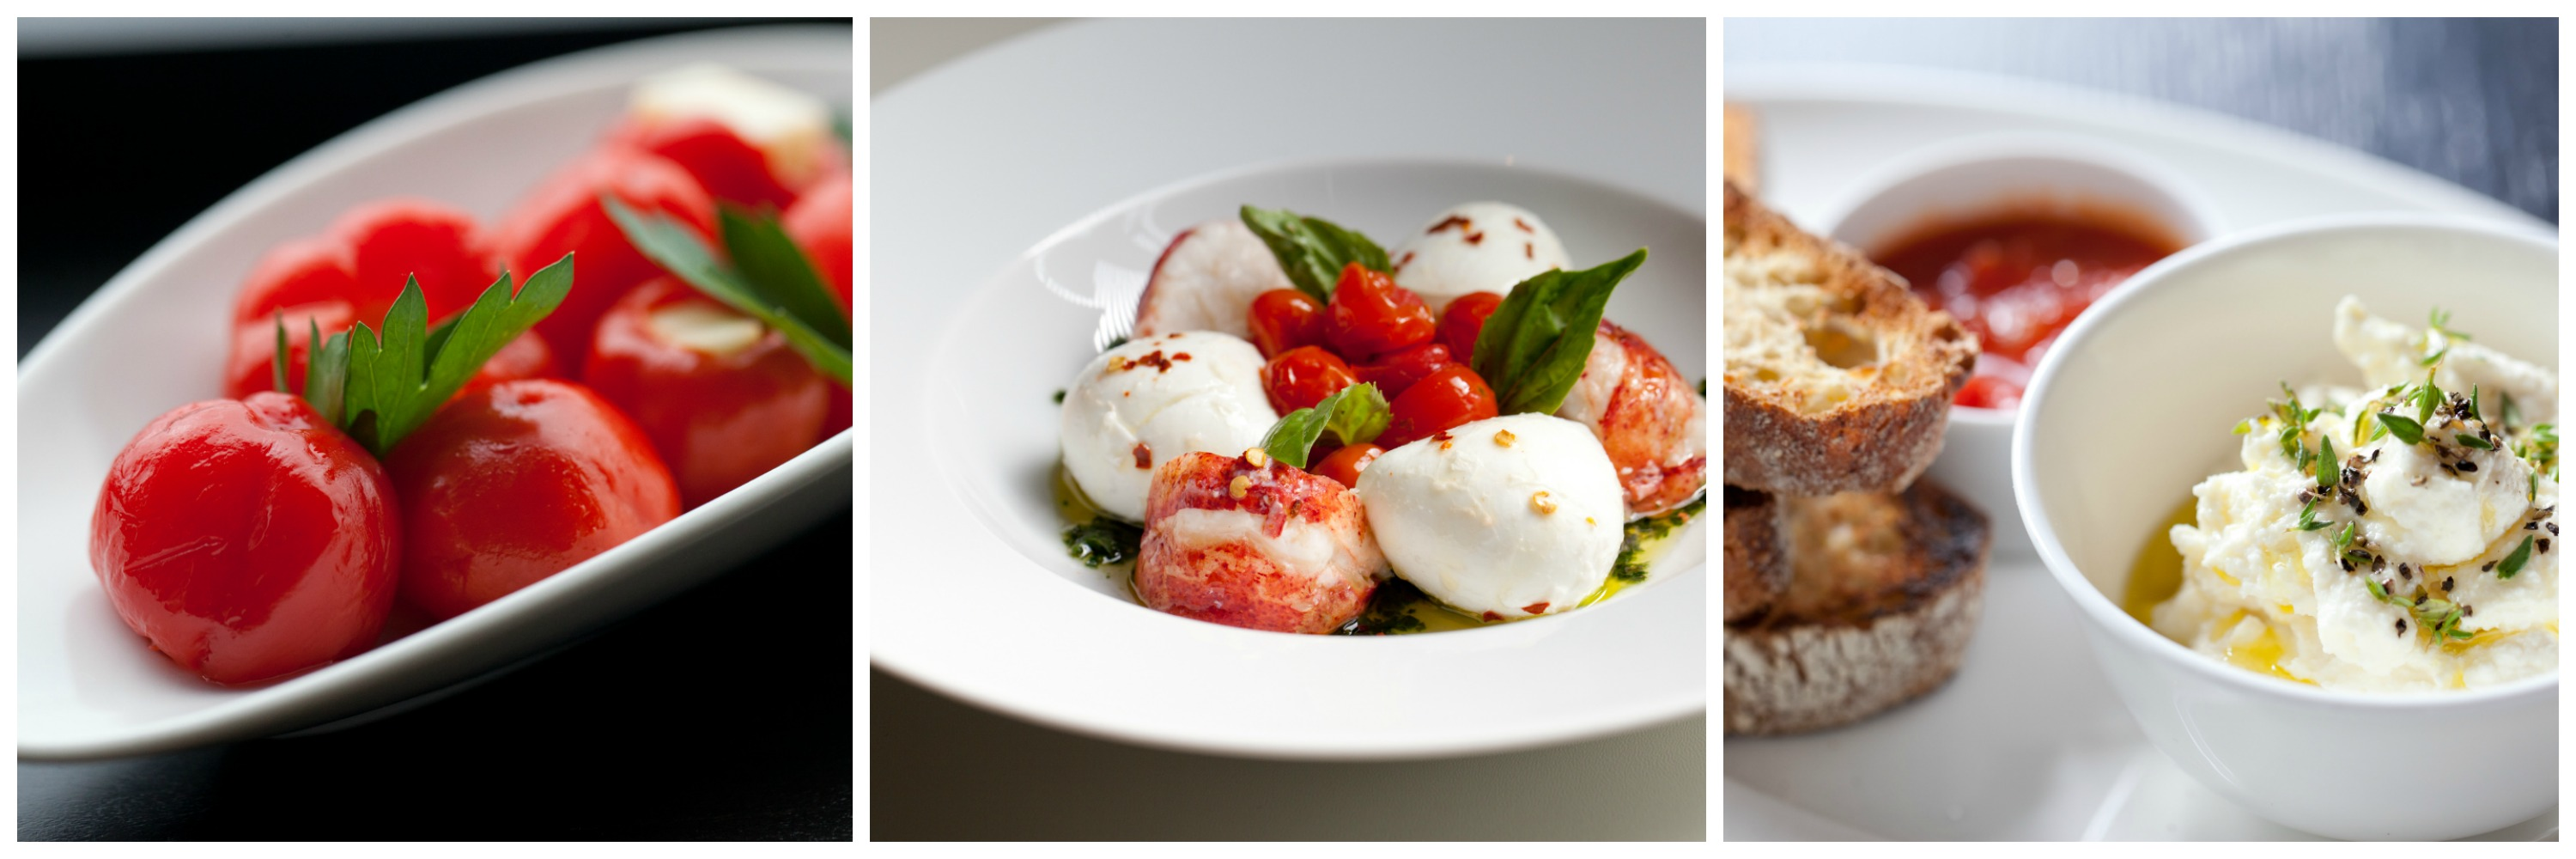 Peppers, Lobster Caprese salad and ricotta cheese from RPM Italian